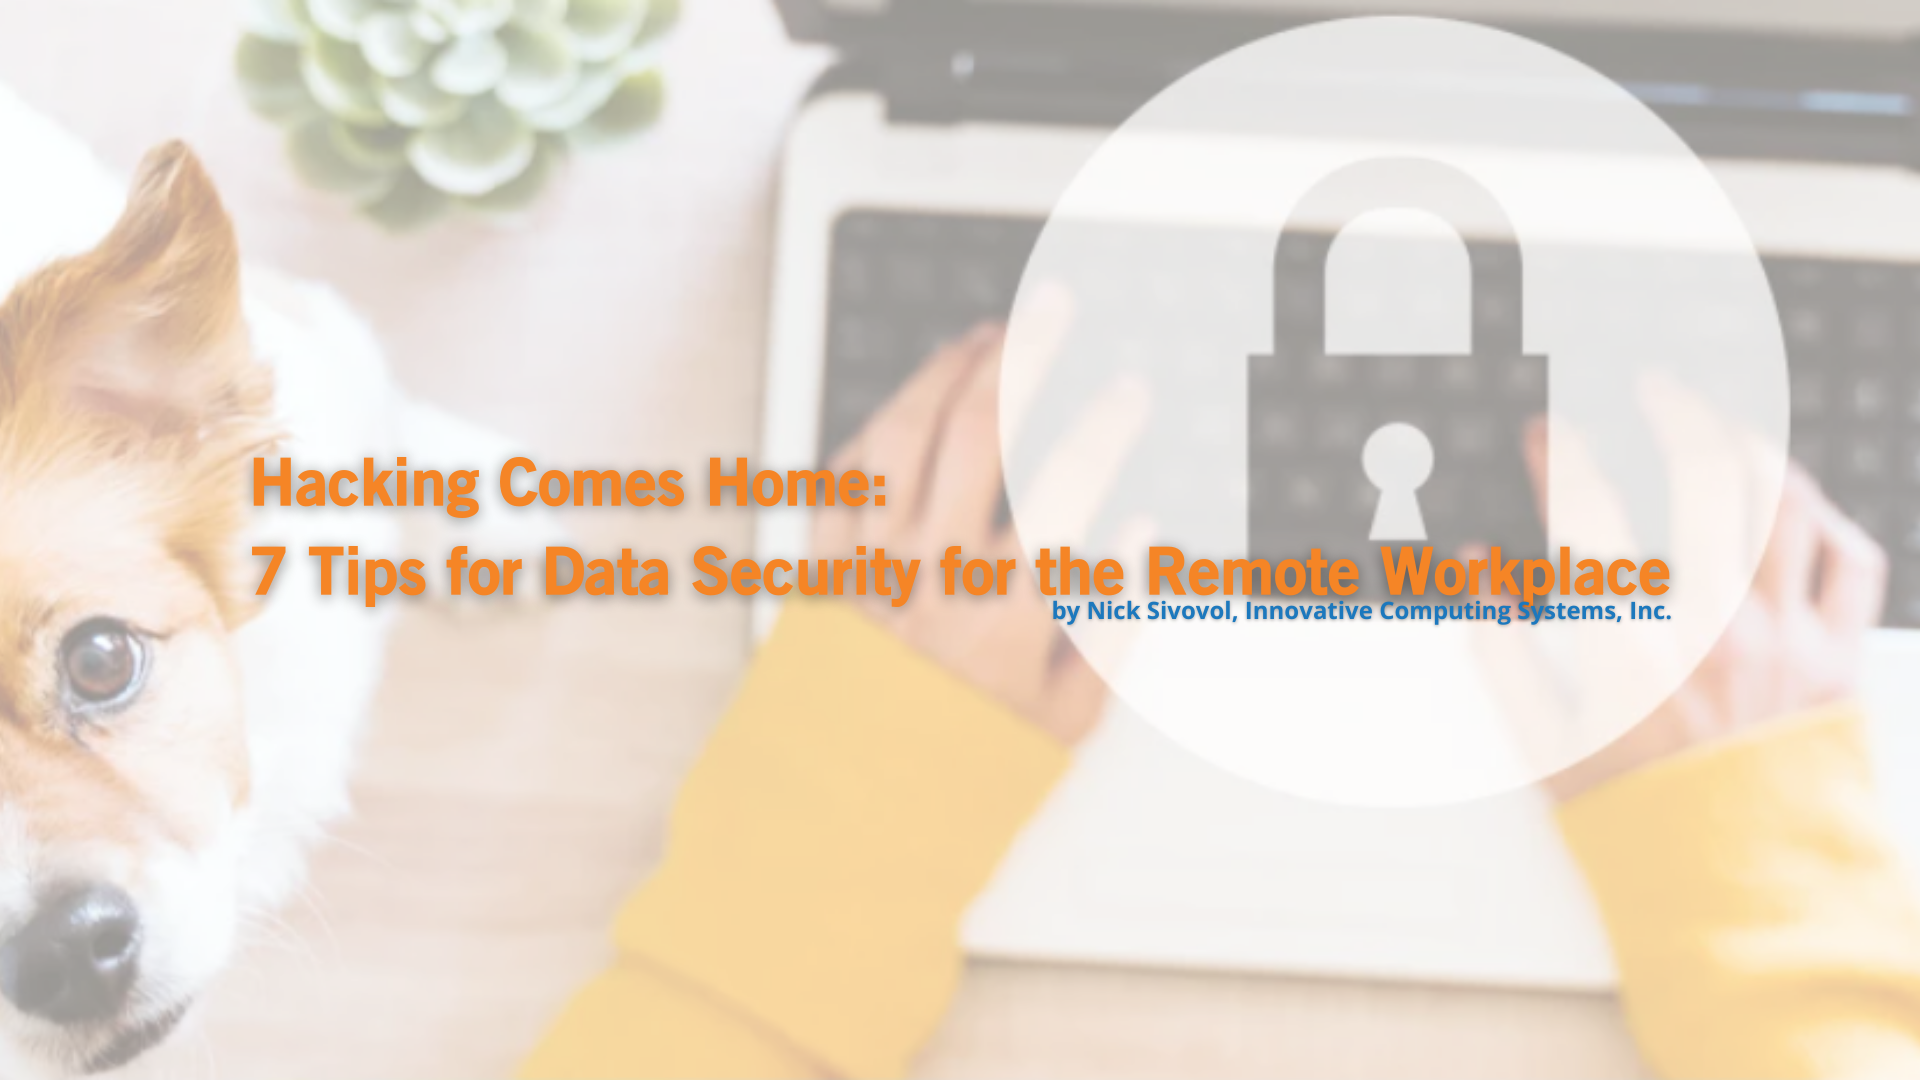 Hacking Comes Home 7 Tips for Data Security for the Remote Workplace